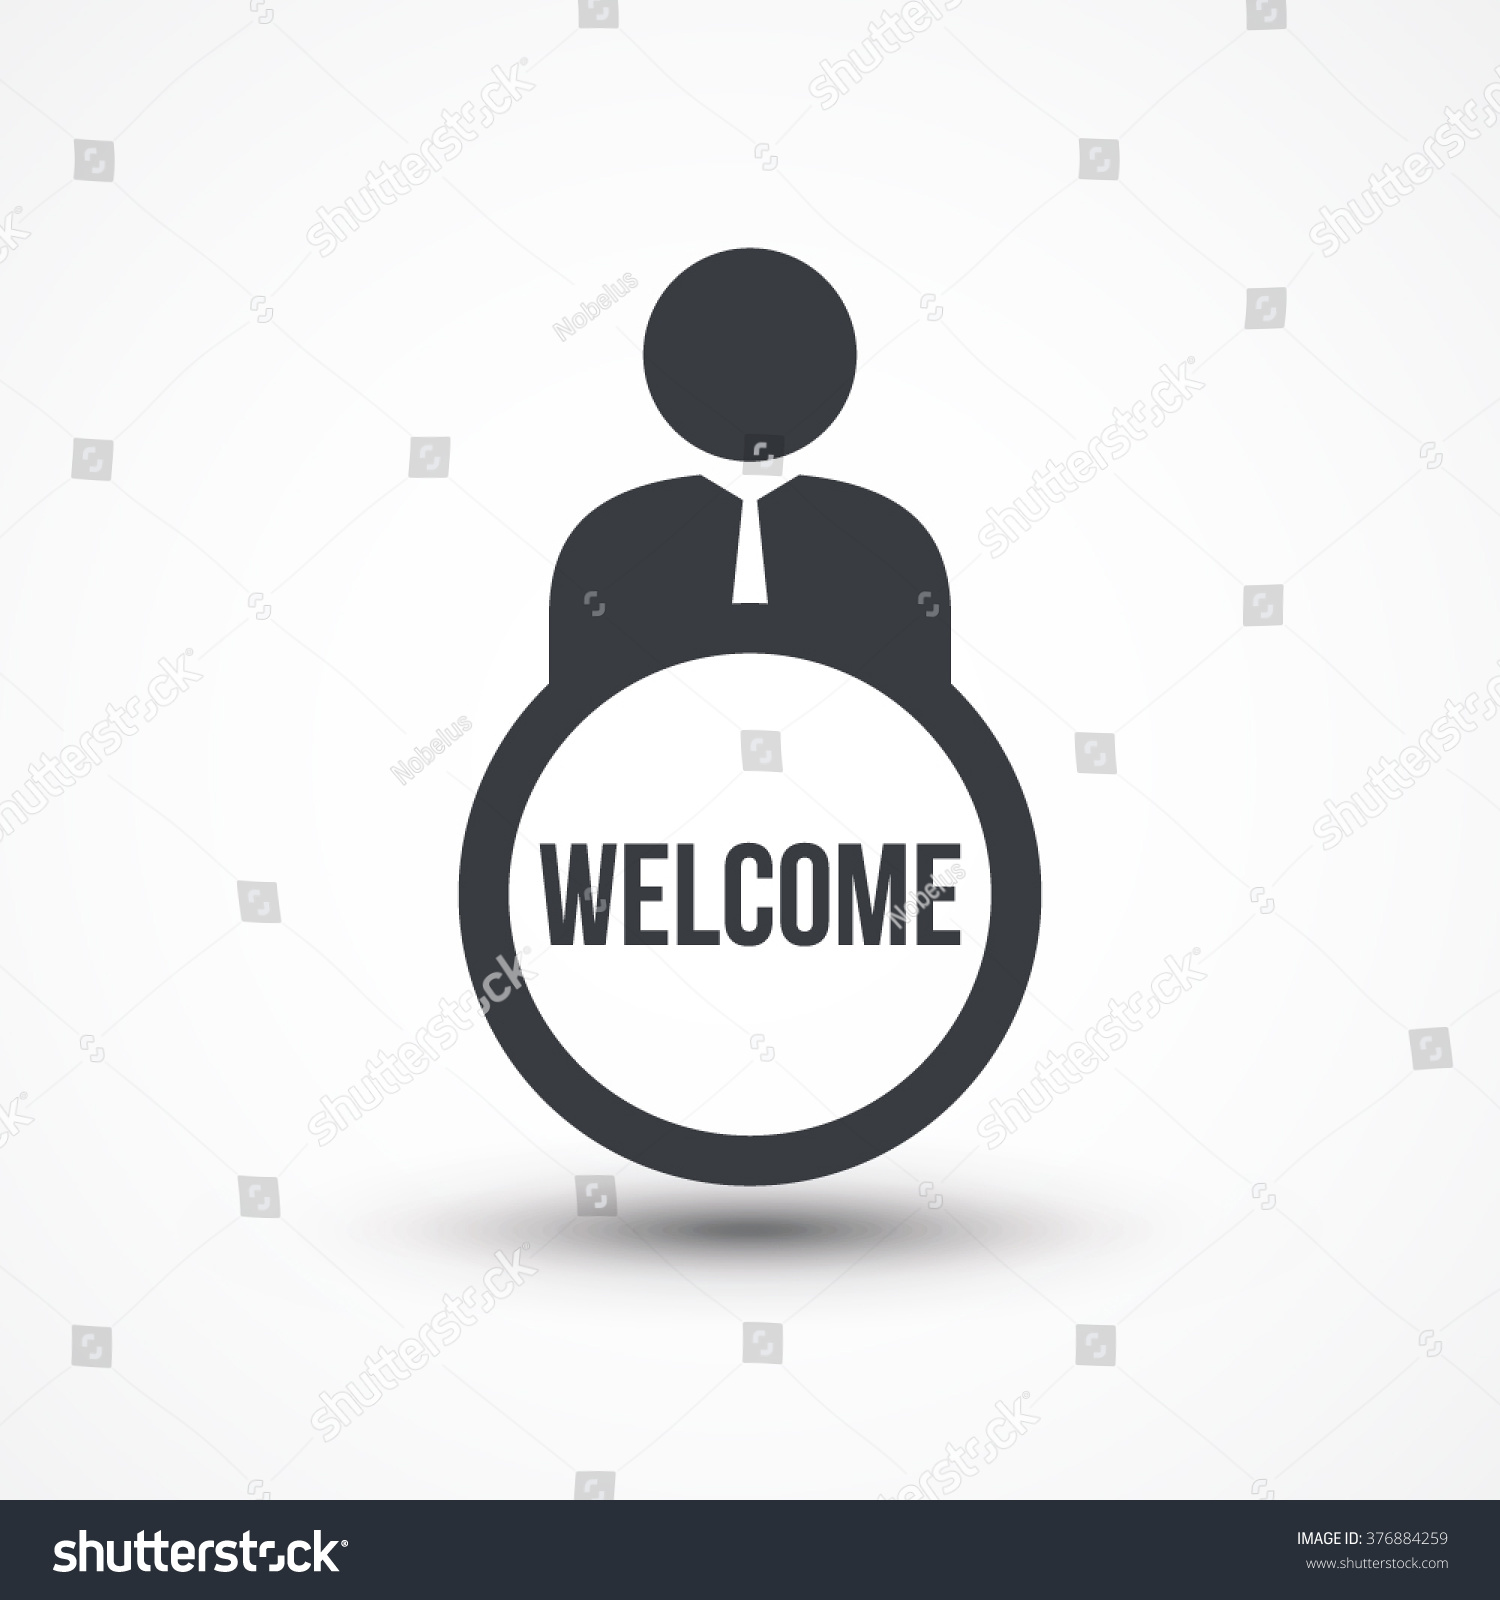 Business person text welcome flat icon stock vector 376884259 business person with text welcome flat icon buycottarizona Gallery